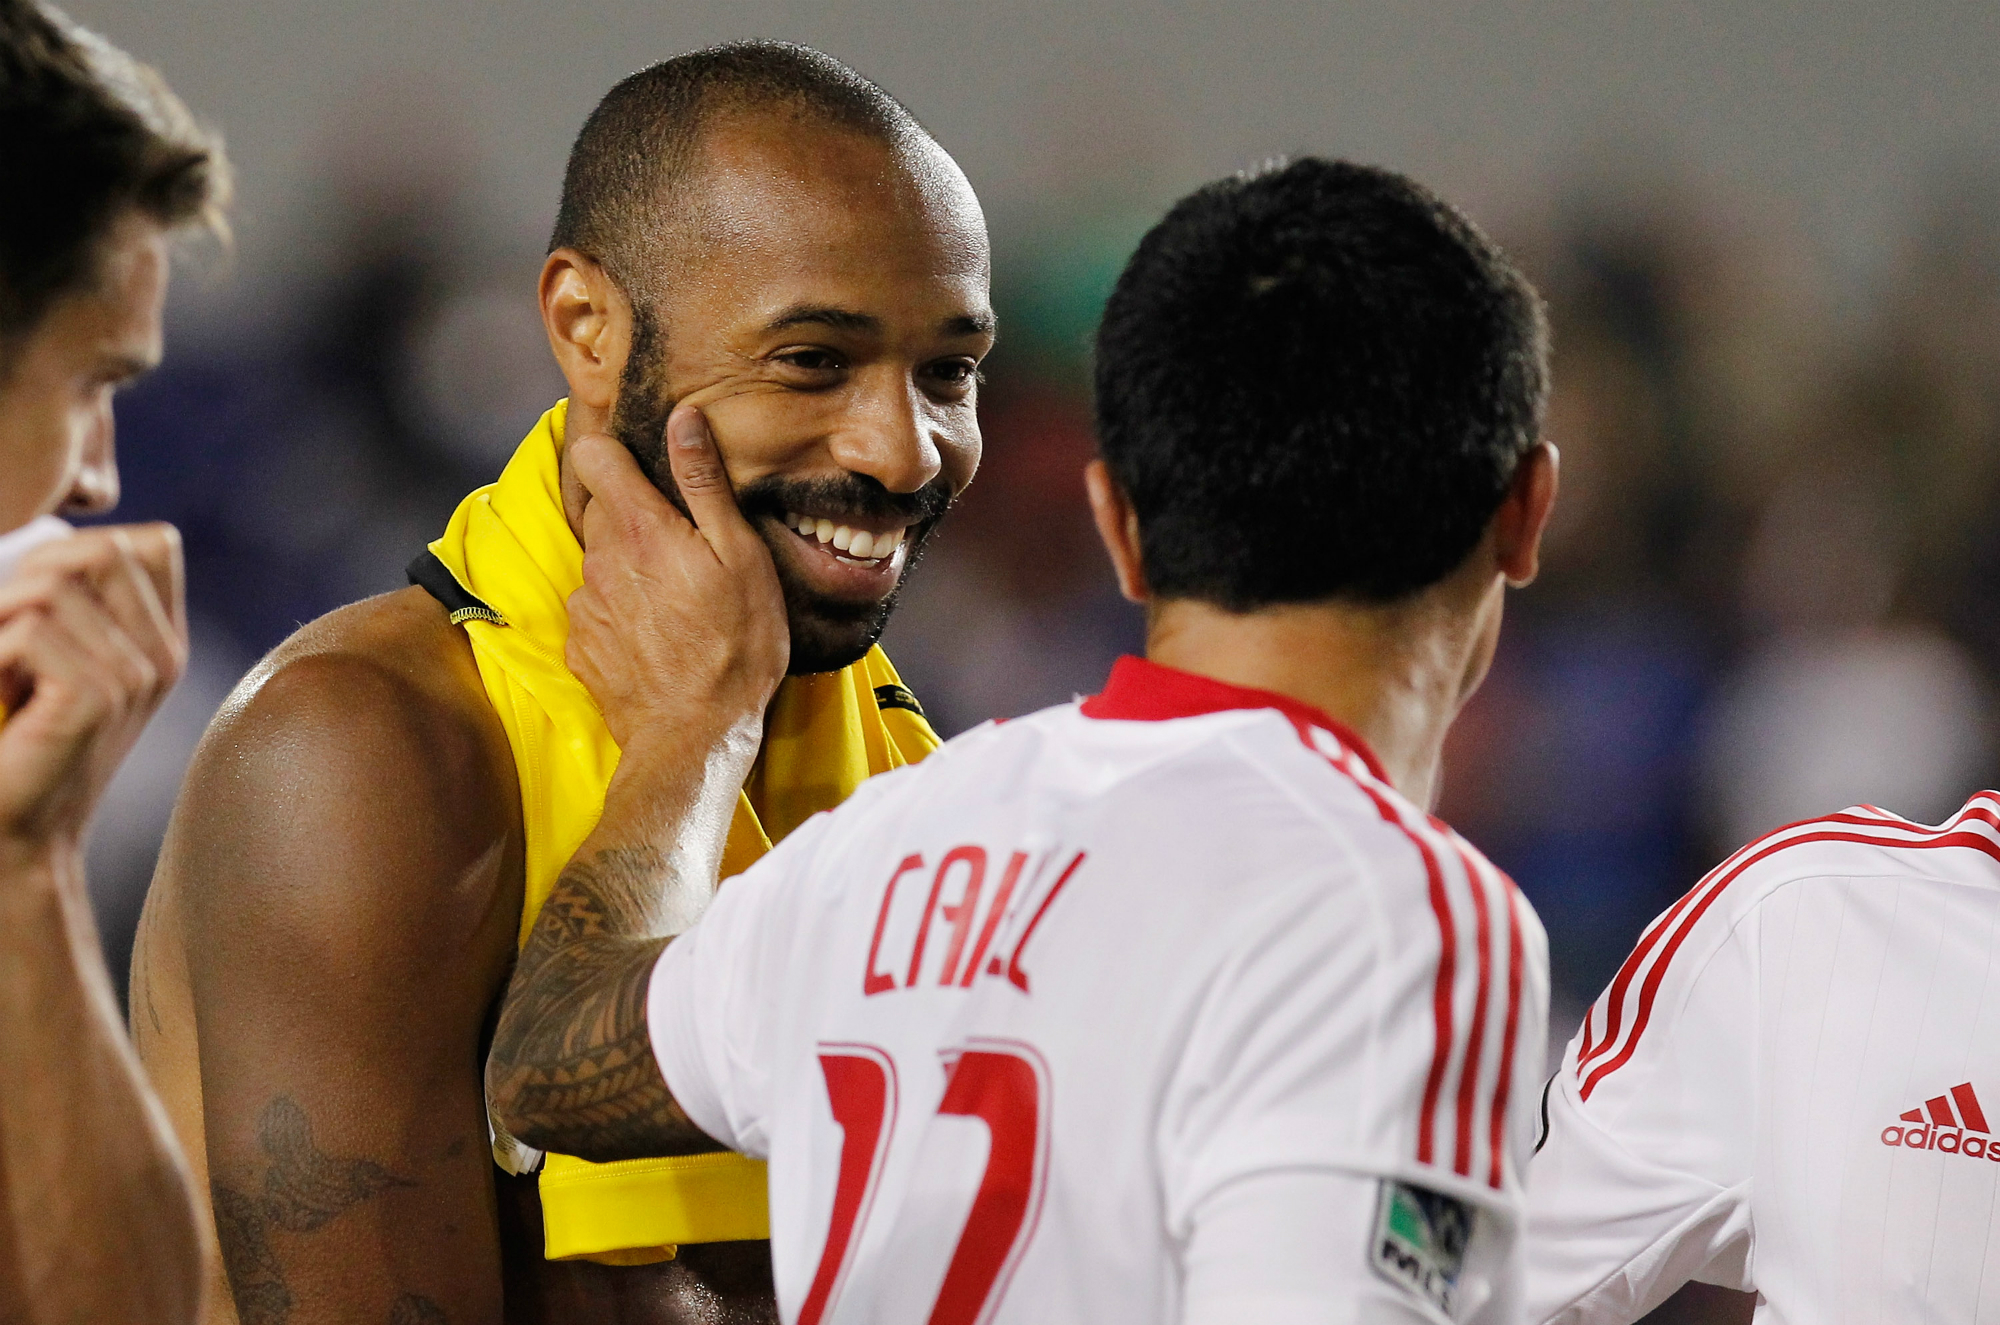 Thierry Henry and Tim Cahill